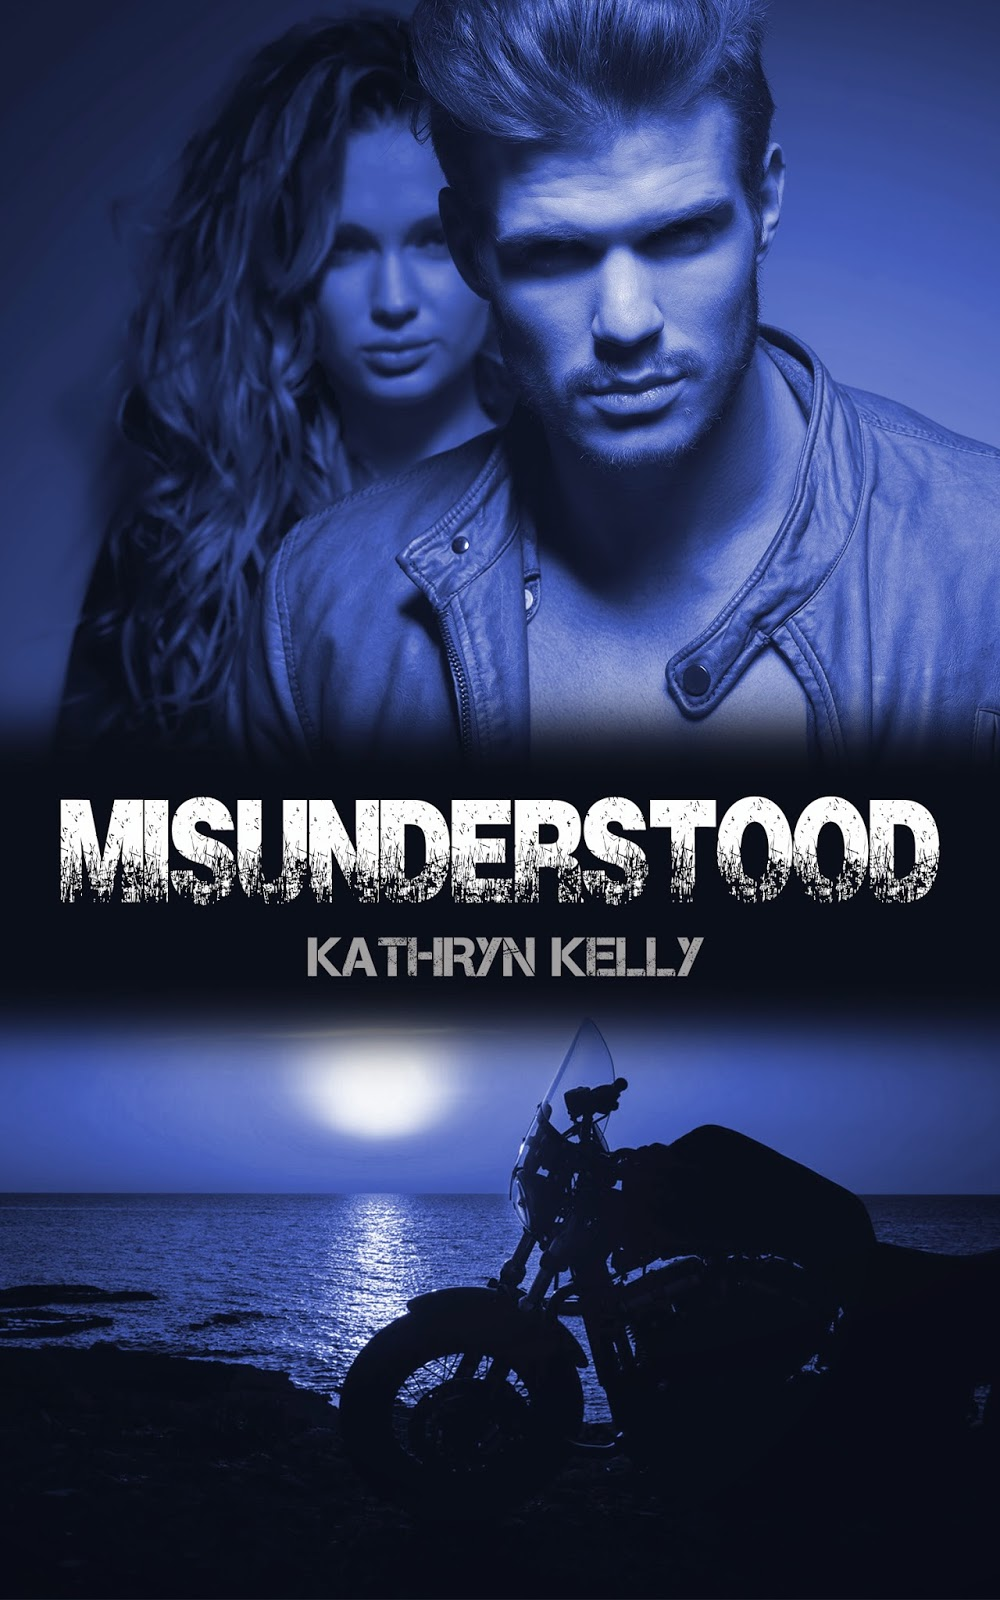 https://www.allromanceebooks.com/product-misunderstood-1461854-149.html